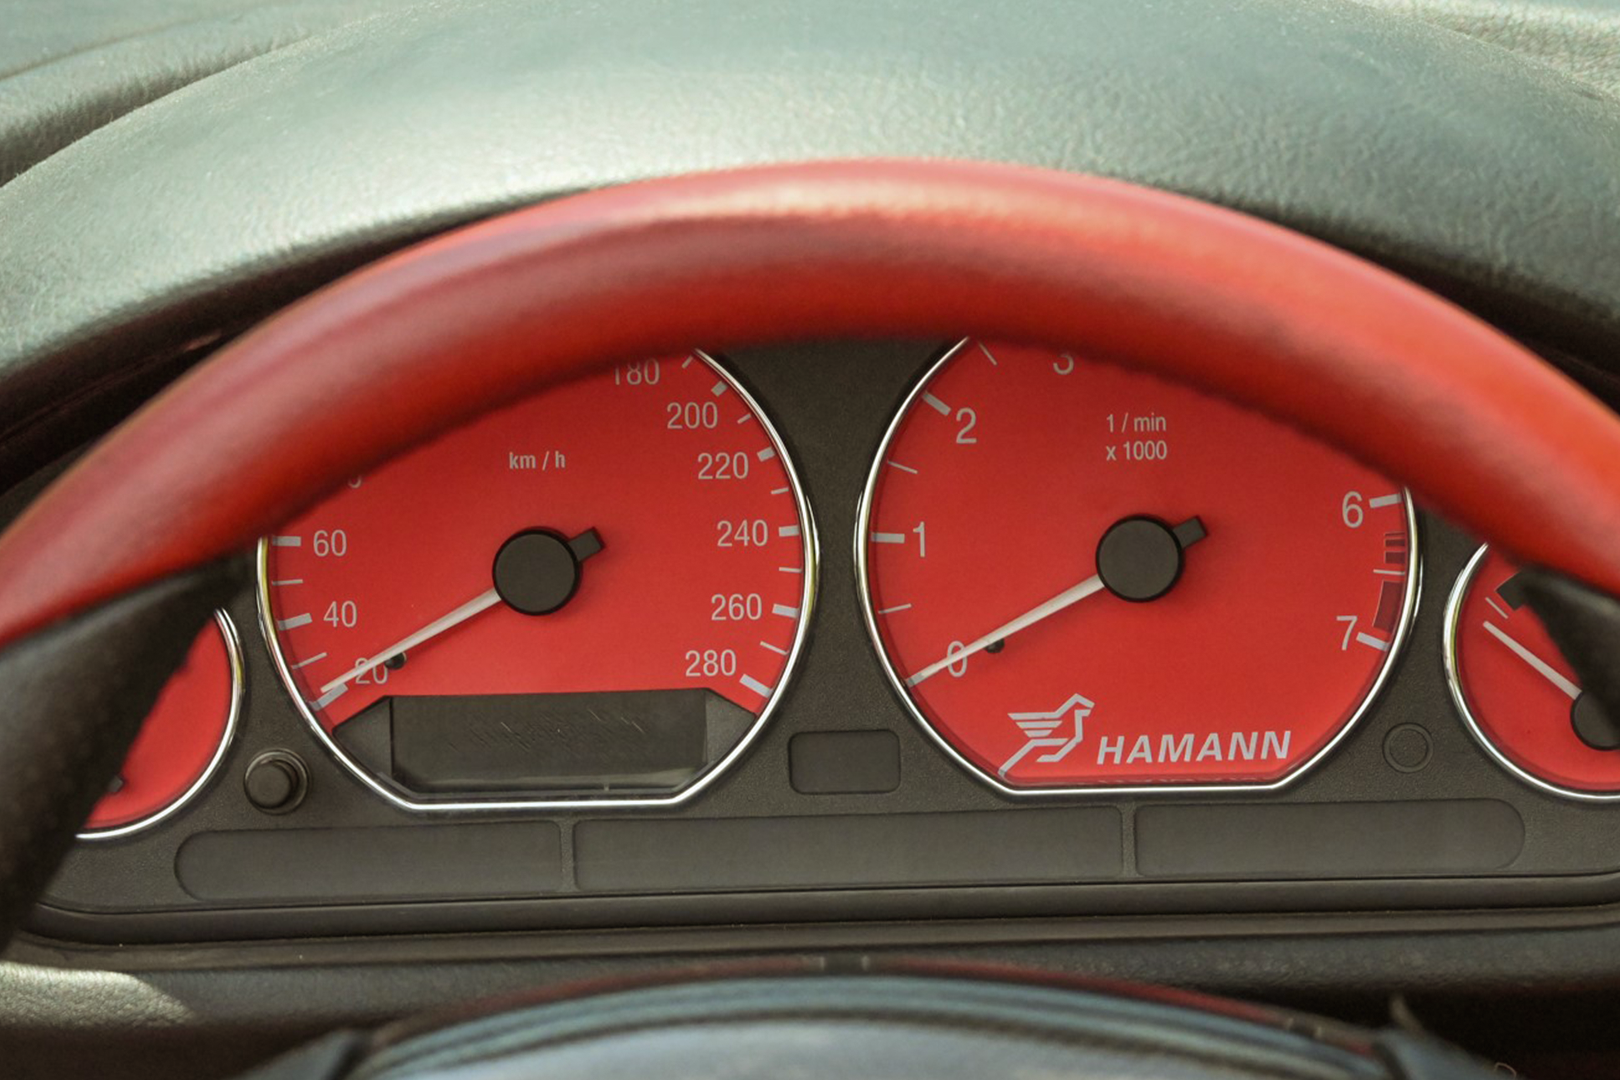 Speed Is Affected By Tyre Size